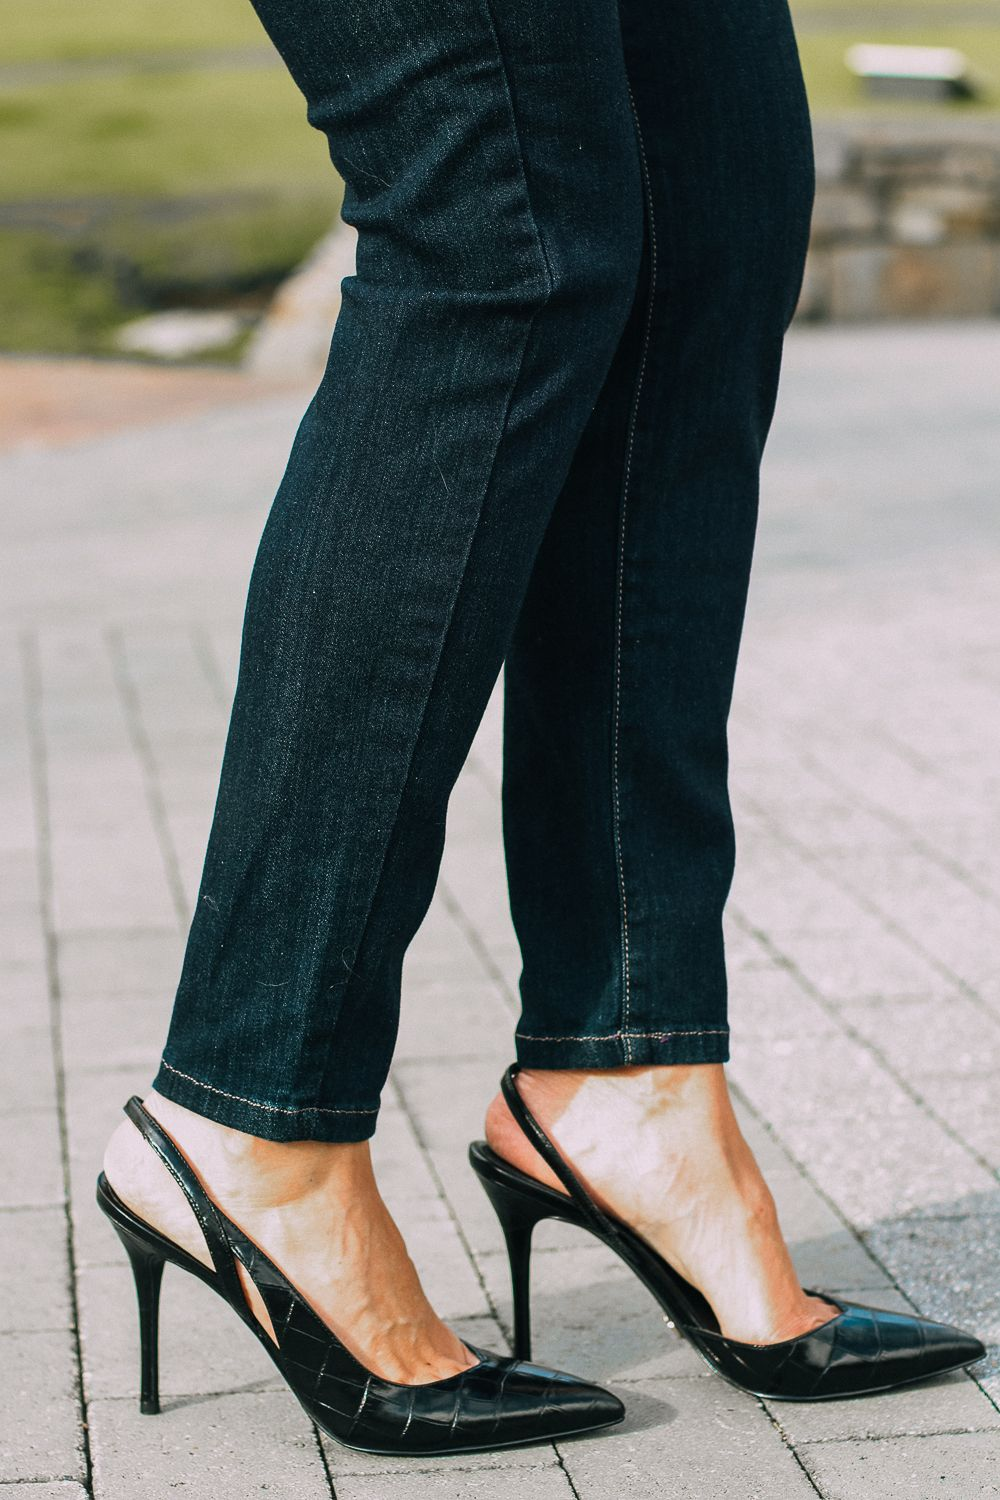 Best jeans for curves パンプス ズボン